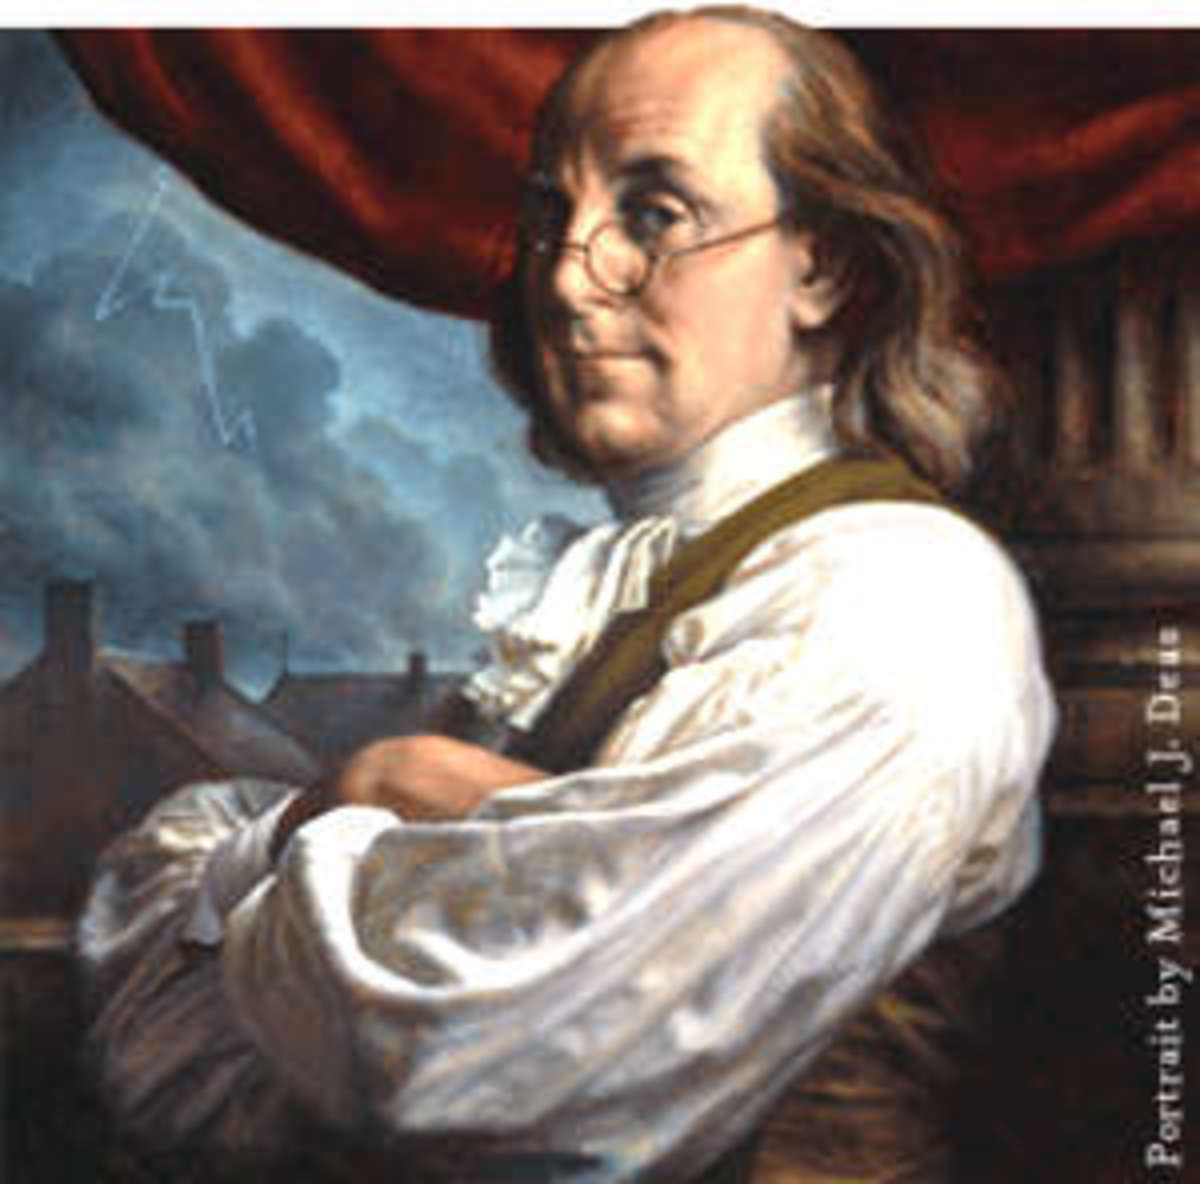 Benjamin Franklin - Founding Father & Serial Killer?